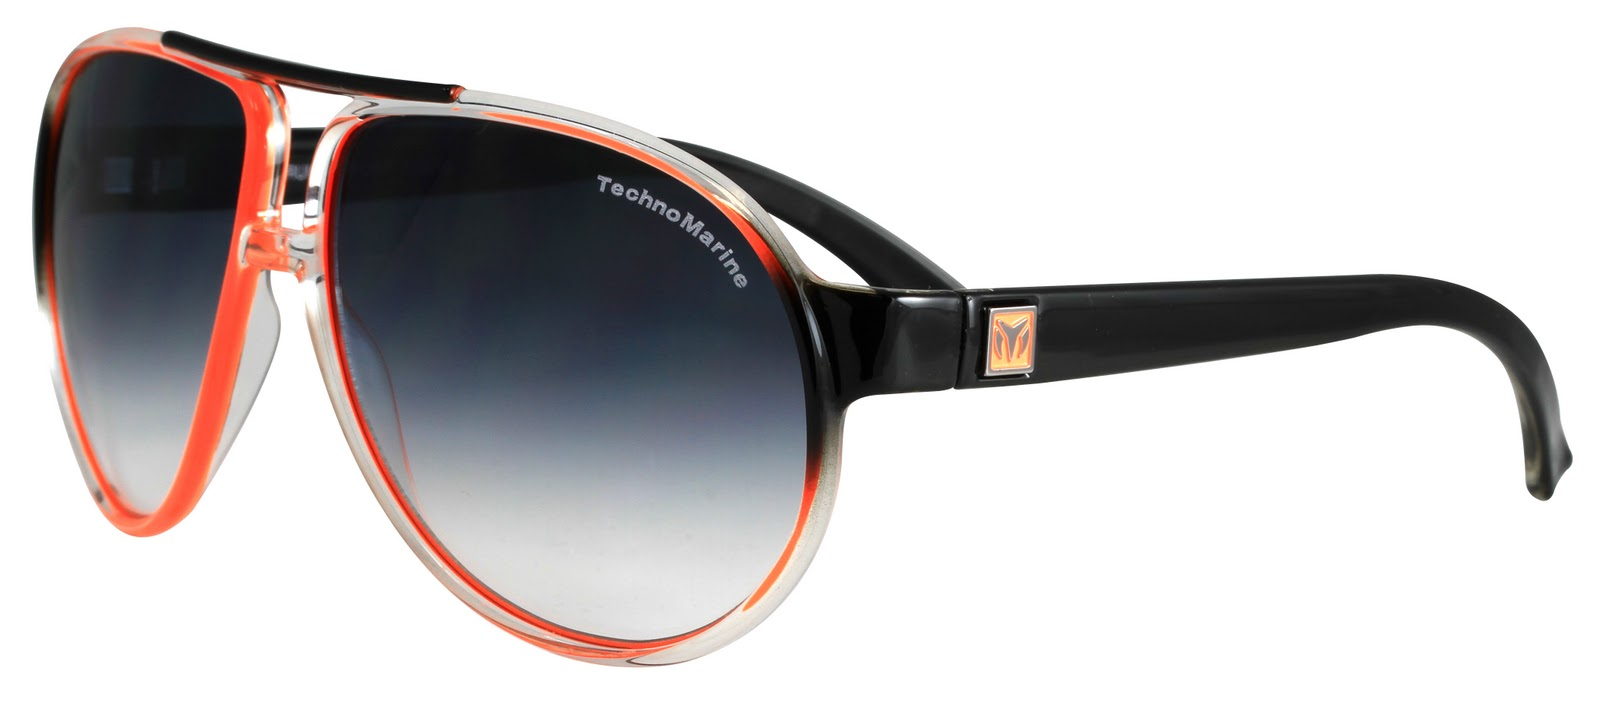 upgrade my fashion technomarine sunglasses